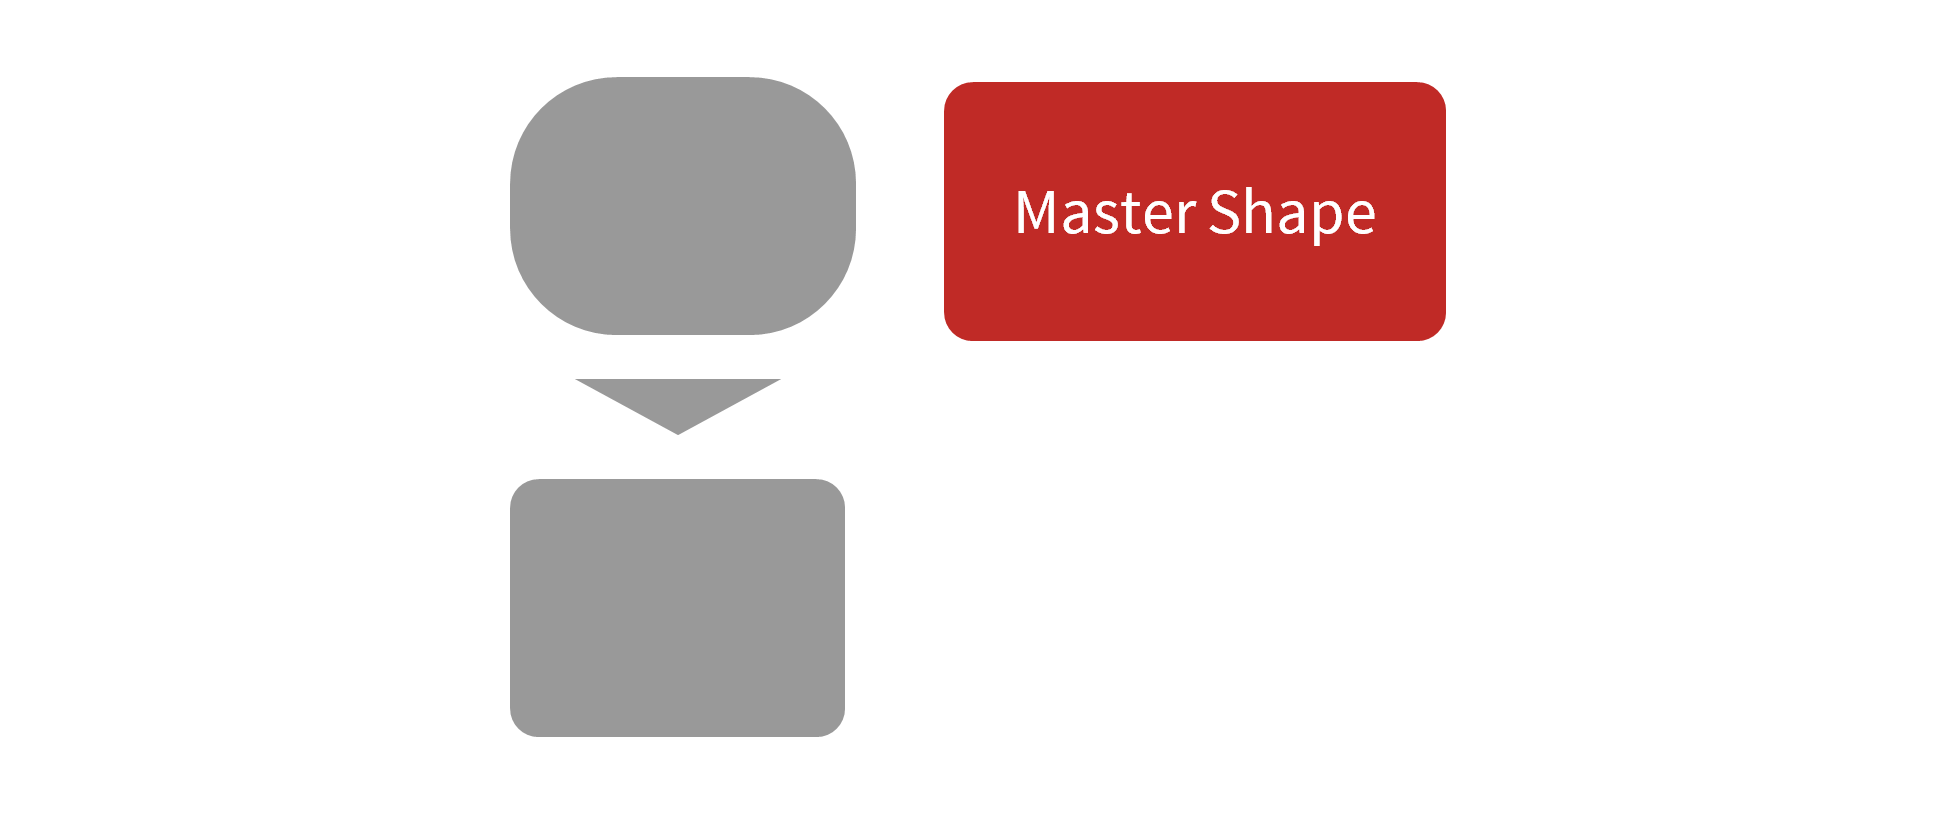 Align Rounded Rectangles